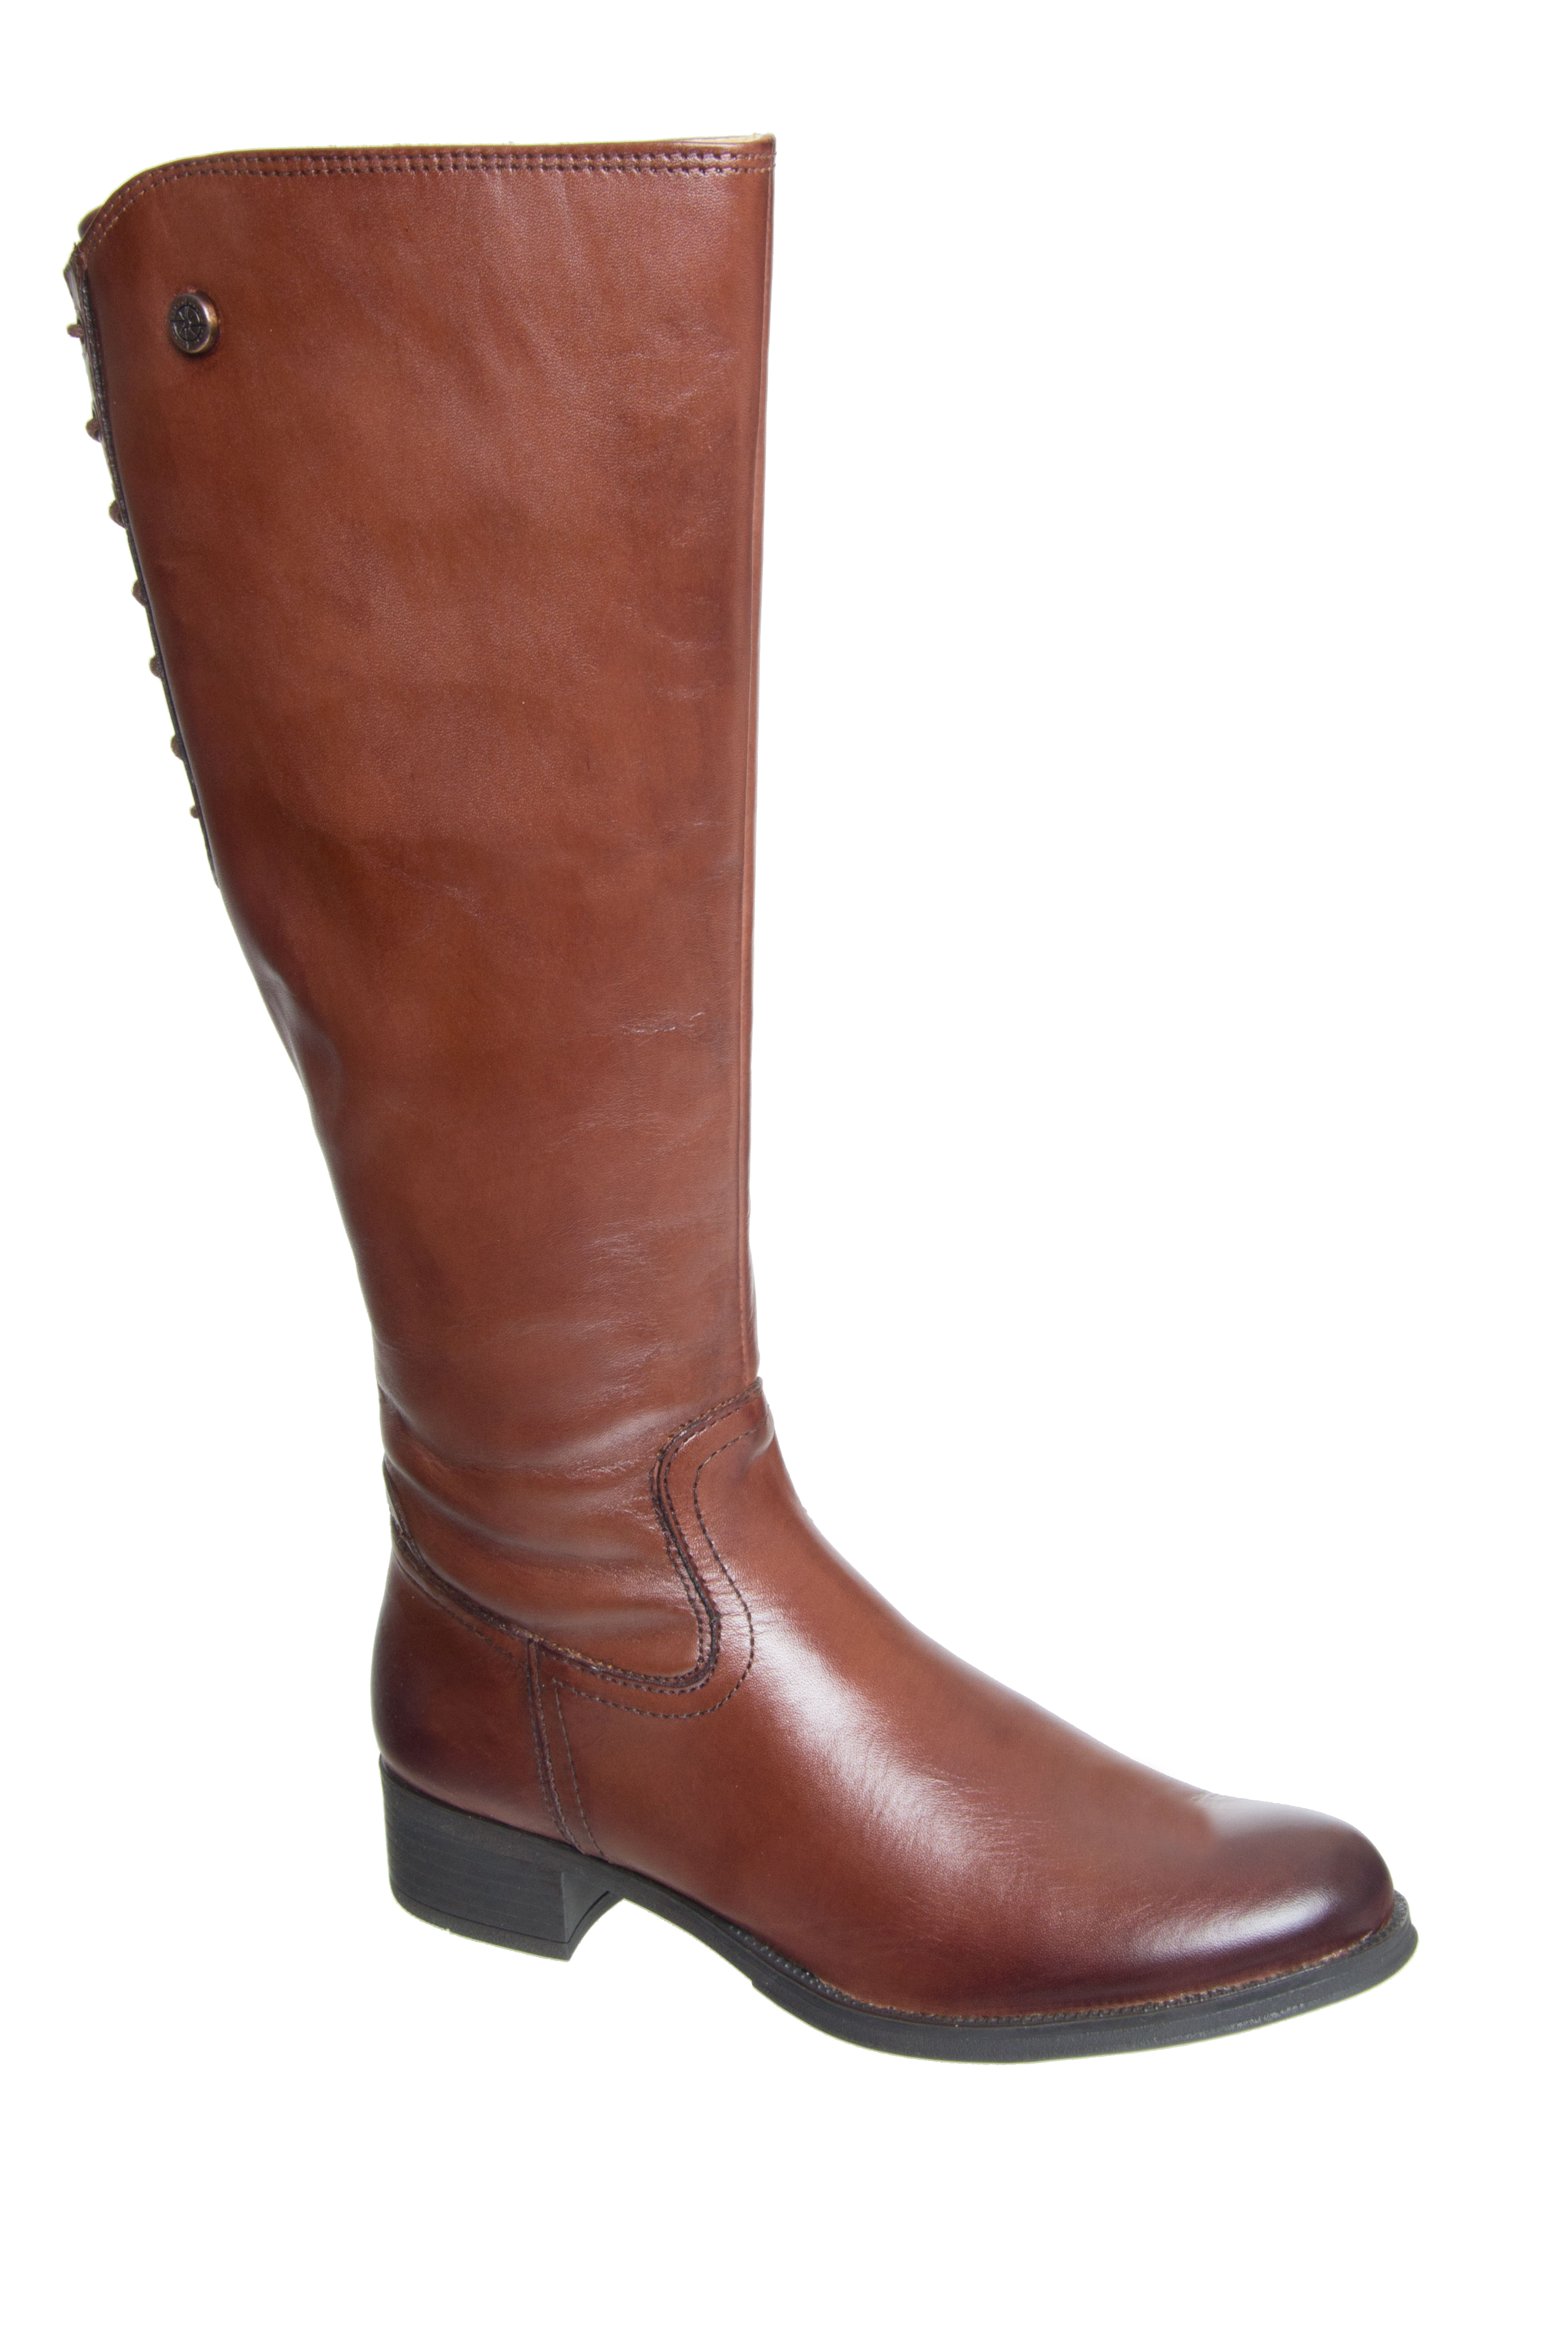 Bussola Salma Mid Calf Boots - Russet